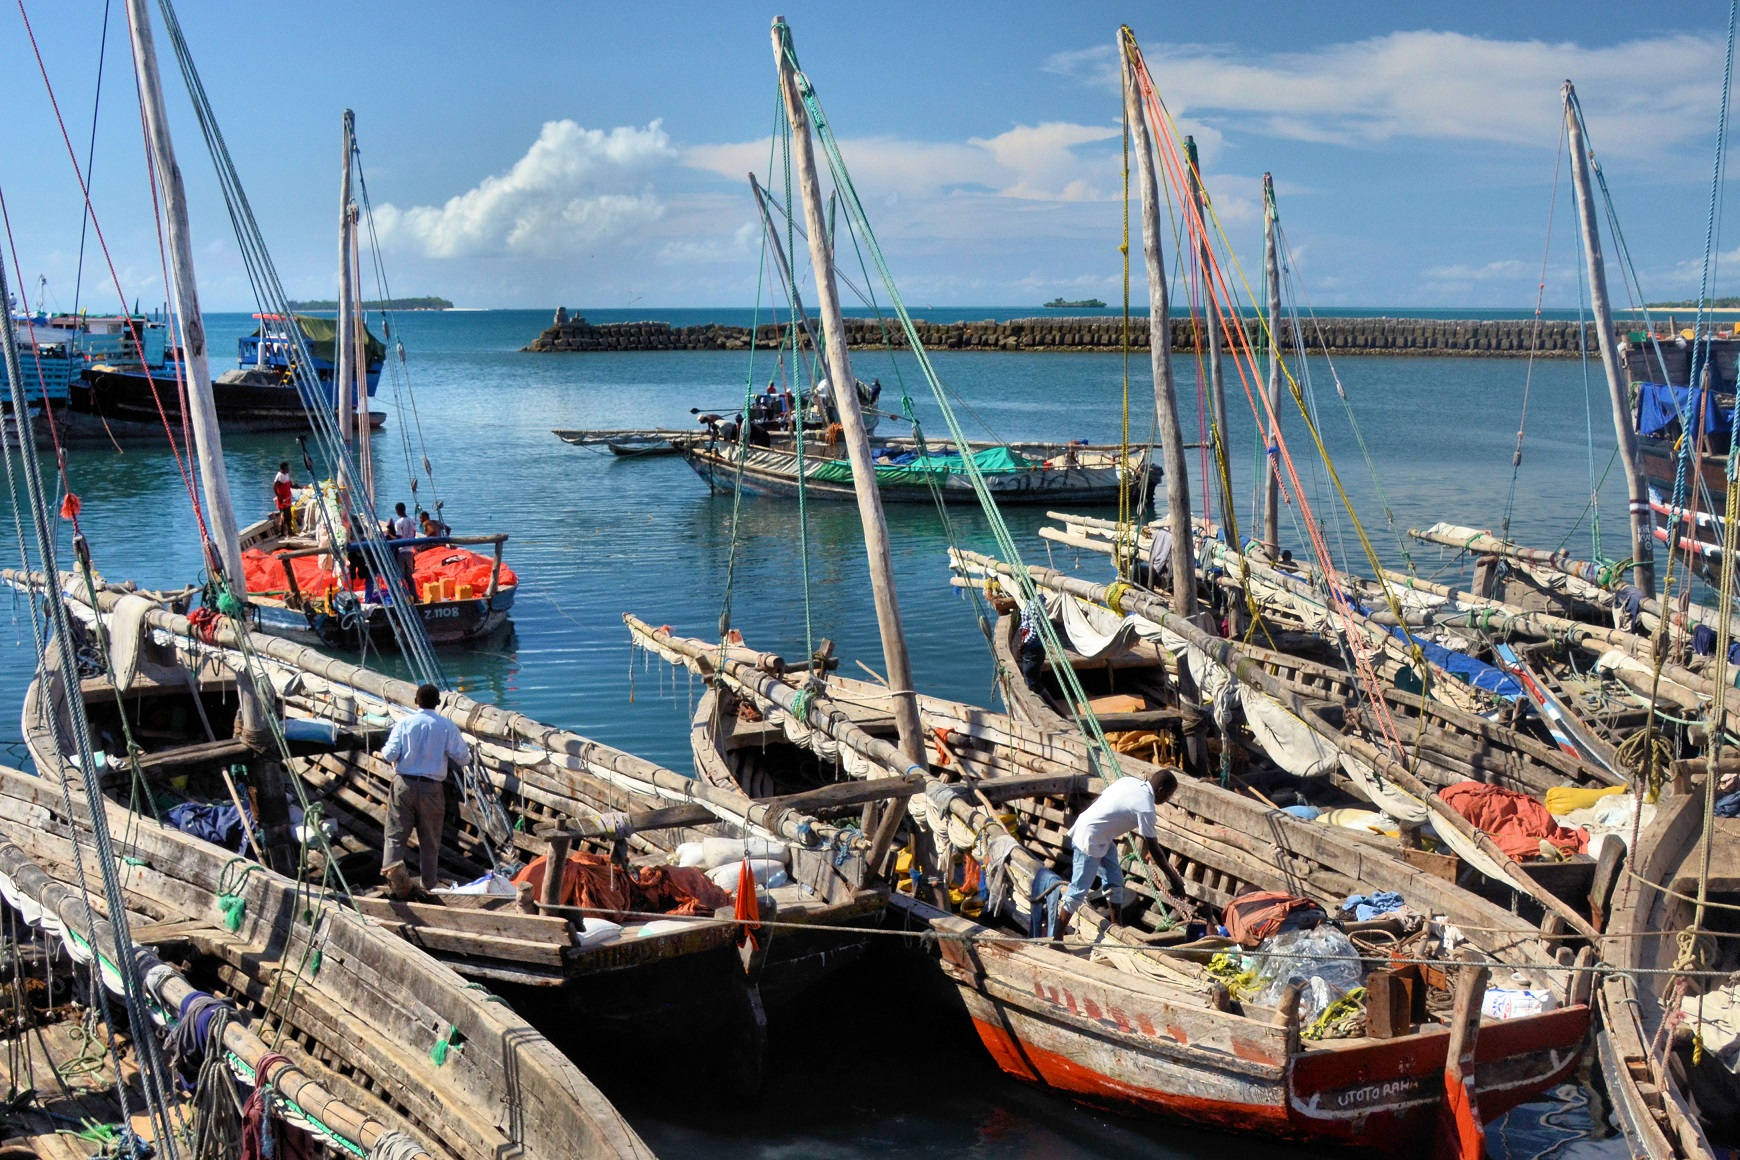 As they have done for centuries, Dhow merchant vessels are still taking their products across the Indian Ocean. These ancient boats have changed little since the 18th and 19th centuries when they were used to ship slaves and ivory from the African continent to the Zanzibar archipelago.